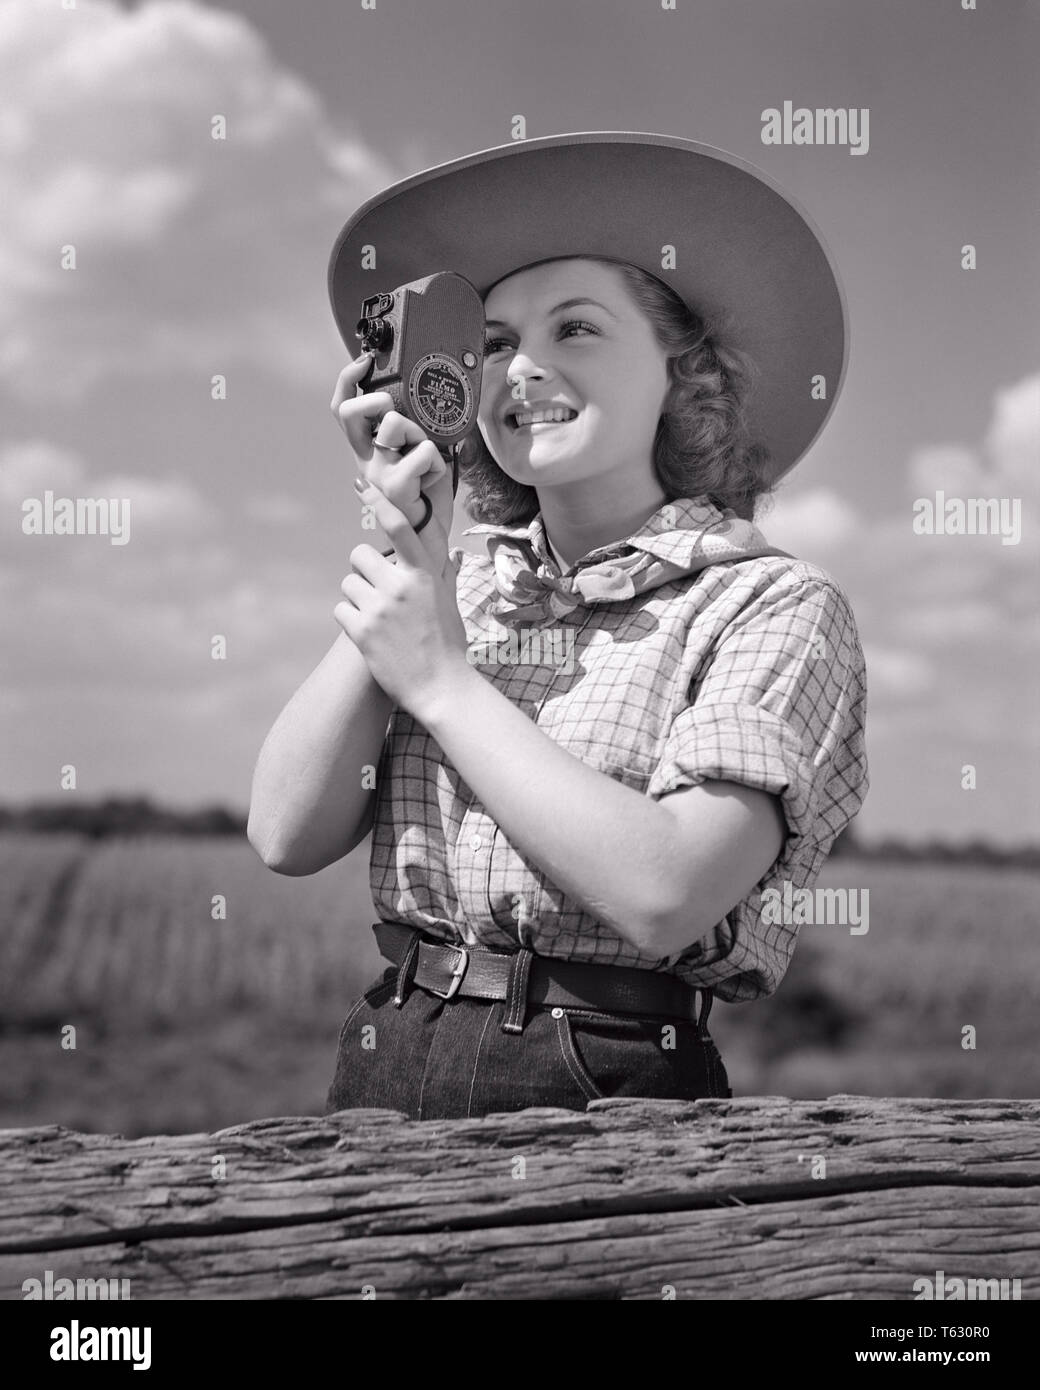 1940s SMILING YOUNG WOMAN IN COWBOY HAT AND WESTERN CLOTHES PHOTOGRAPHING USING HAND HELD 8MM HOME MOVIE CAMERA - u532 HAR001 HARS HOBBY LEISURE INTEREST AND EXCITEMENT HOBBIES KNOWLEDGE RECREATION PASTIME PHOTOGRAPHING PLEASURE IN SMILES USING CONCEPTUAL JOYFUL STYLISH 8MM HAND HELD RELAXATION YOUNG ADULT WOMAN AMATEUR BLACK AND WHITE CAUCASIAN ETHNICITY ENJOYMENT HAR001 OLD FASHIONED - Stock Image